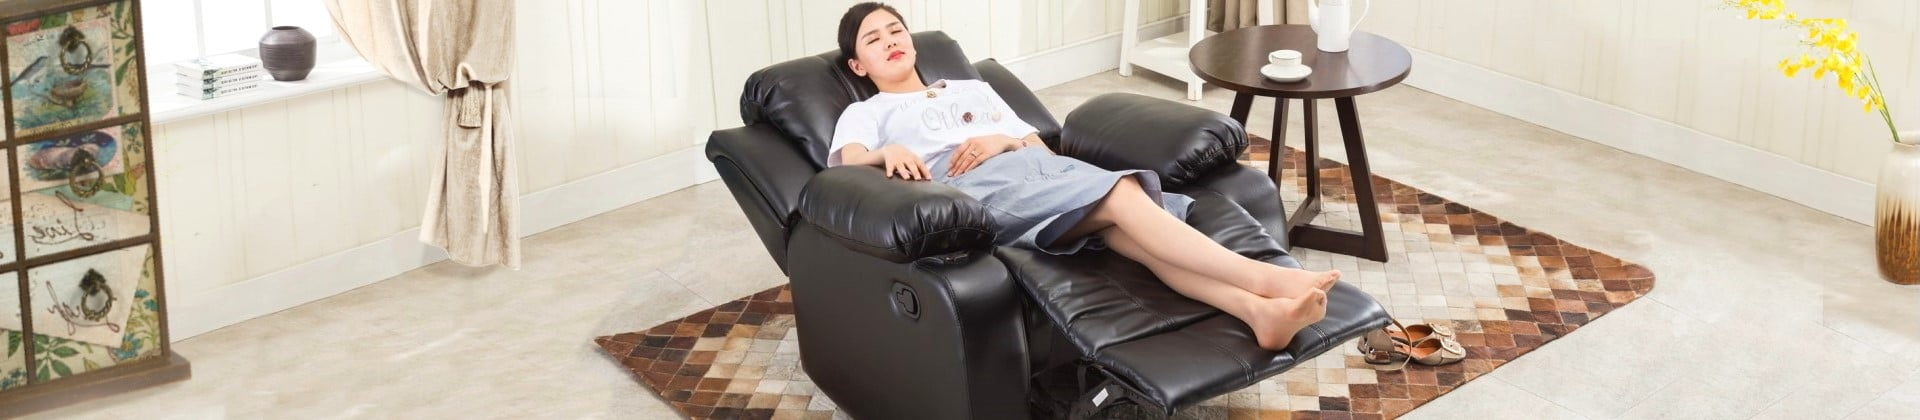 Best Recliners for Sleeping Reviewed in Detail